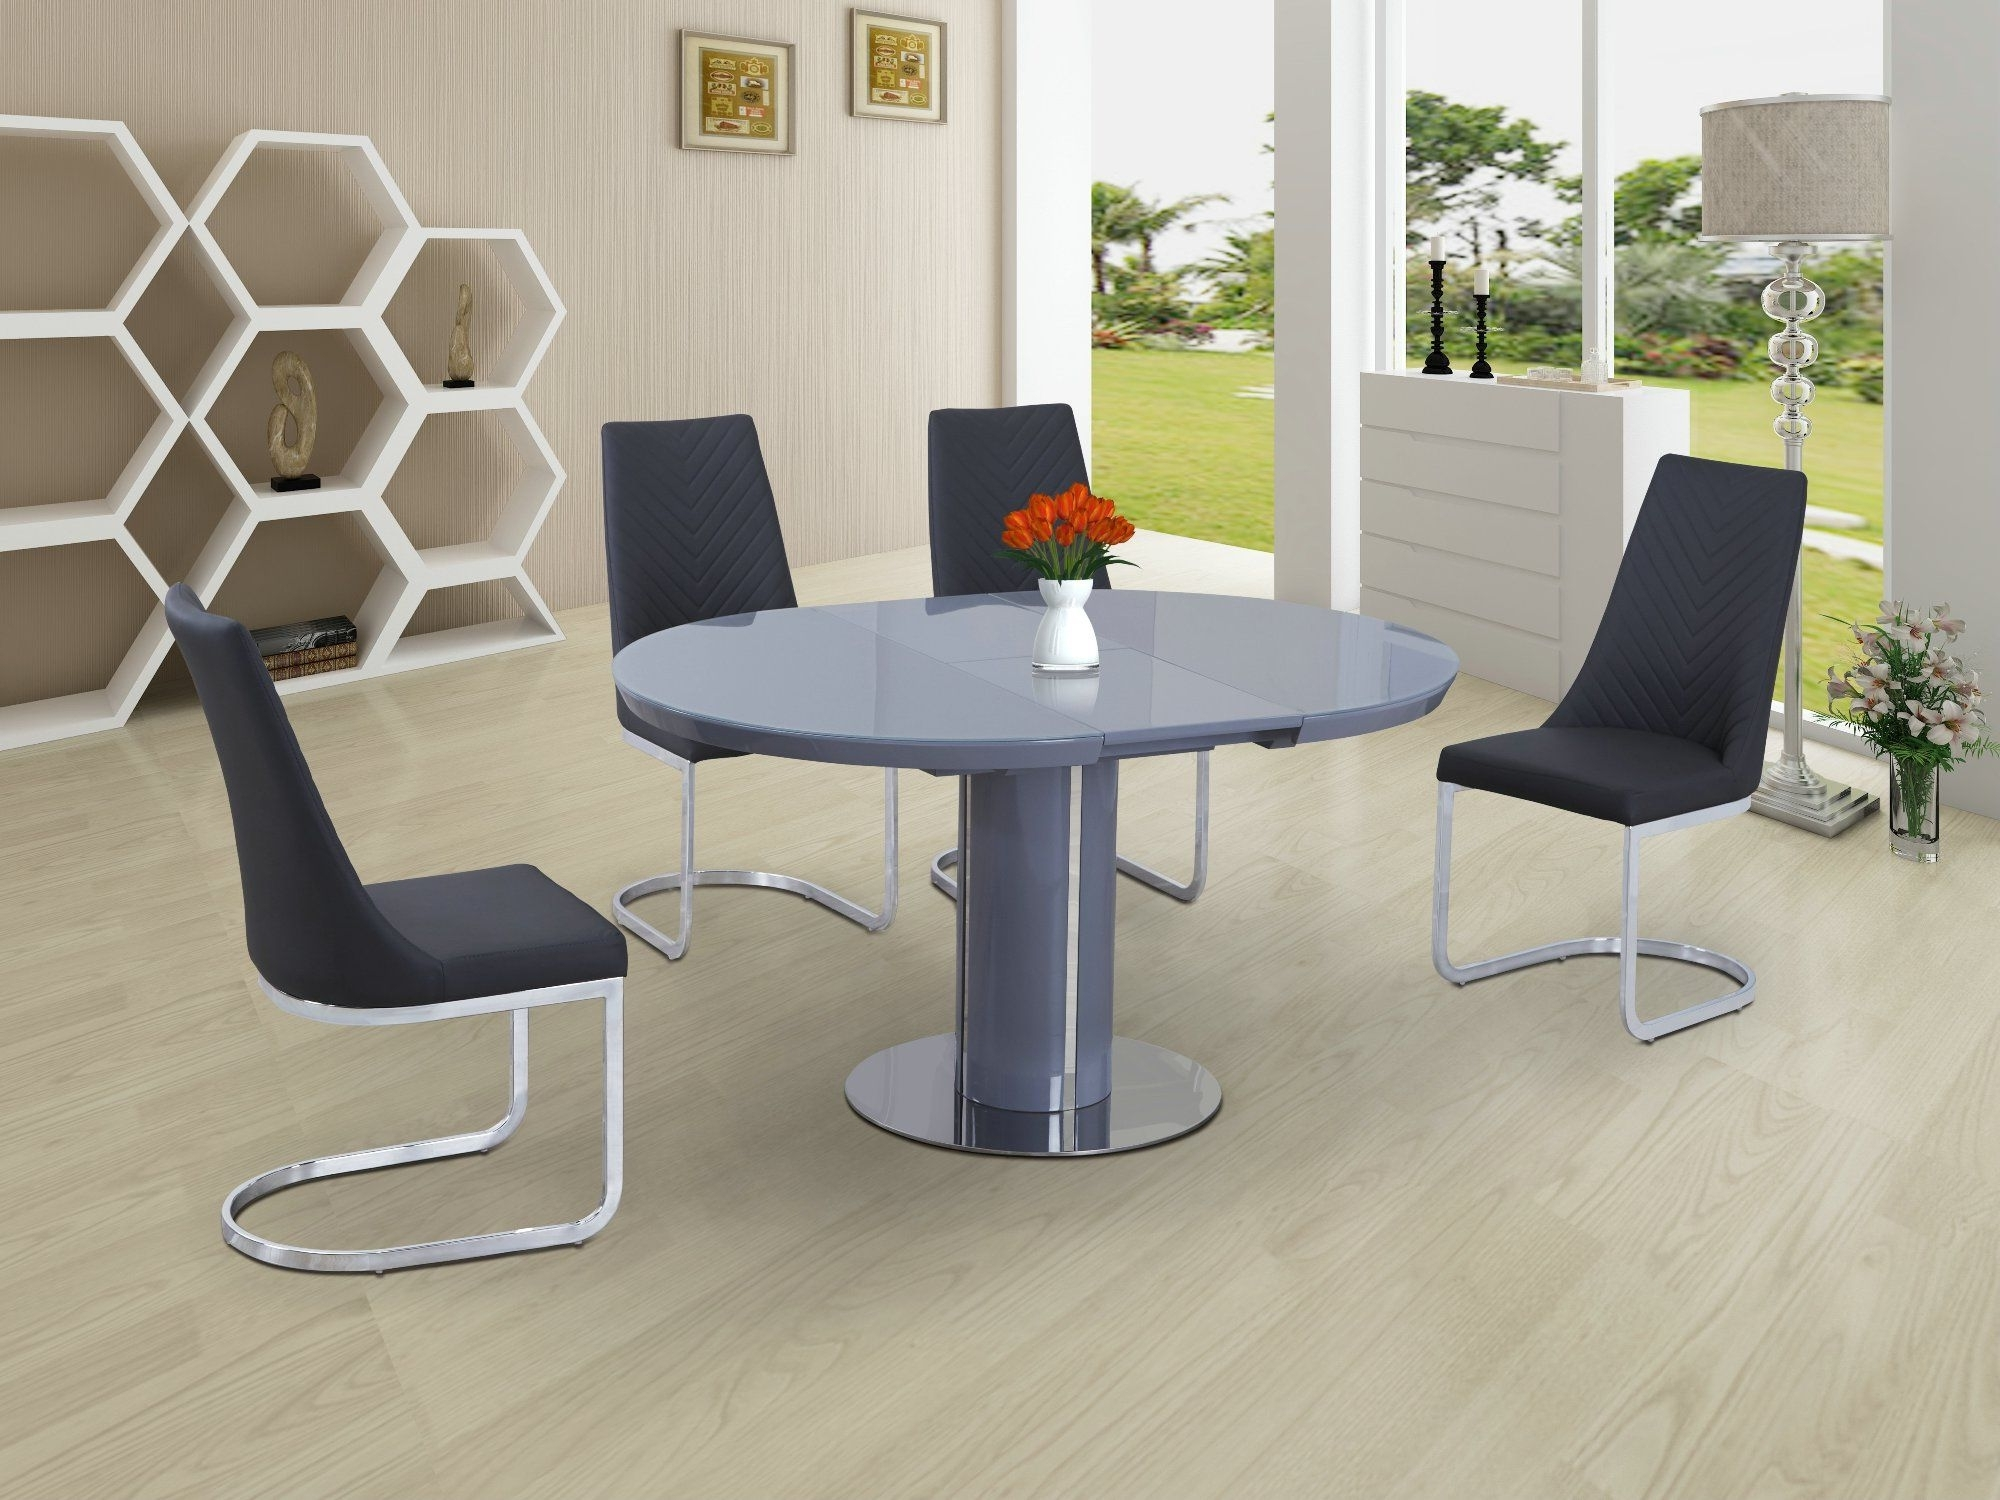 Eclipse Round Oval Gloss & Glass Extending 110 To 145 Cm Dining throughout Most Recently Released Extending Round Dining Tables